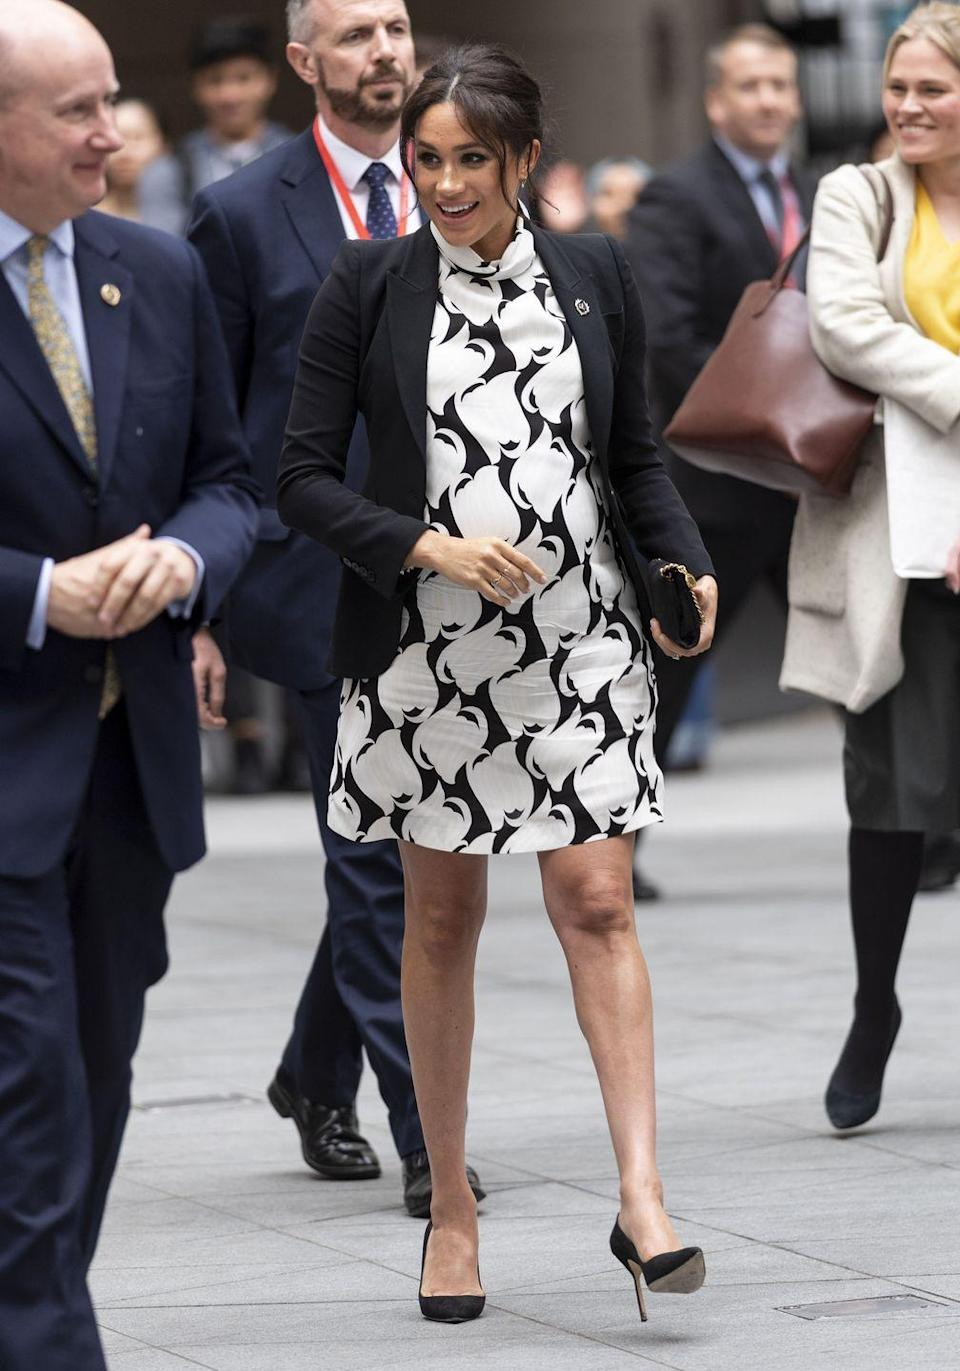 "<p>Meghan Markle arrived at an International Women's Day panel organized by the Queen's Commonwealth Trust, <a href=""https://www.townandcountrymag.com/society/tradition/a26761685/meghan-markle-vice-president-queens-commonwealth-trust/"" rel=""nofollow noopener"" target=""_blank"" data-ylk=""slk:of which she was just named Vice President"" class=""link rapid-noclick-resp"">of which she was just named Vice President</a>, in a printed black and white dress, black blazer, <a href=""https://shop.nordstrom.com/s/stella-mccartney-shaggy-deer-faux-leather-crossbody-bag/4782119?"" rel=""nofollow noopener"" target=""_blank"" data-ylk=""slk:Stella McCartney clutch"" class=""link rapid-noclick-resp"">Stella McCartney clutch</a> and <a href=""https://shop.nordstrom.com/s/manolo-blahnik-bb-pointy-toe-pump-women/3209276?"" rel=""nofollow noopener"" target=""_blank"" data-ylk=""slk:Manolo Blahnik heels"" class=""link rapid-noclick-resp"">Manolo Blahnik heels</a>. </p><p><a class=""link rapid-noclick-resp"" href=""https://go.redirectingat.com?id=74968X1596630&url=https%3A%2F%2Fshop.nordstrom.com%2Fs%2Fstella-mccartney-shaggy-deer-faux-leather-crossbody-bag%2F4782119&sref=https%3A%2F%2Fwww.townandcountrymag.com%2Fstyle%2Ffashion-trends%2Fg3272%2Fmeghan-markle-preppy-style%2F"" rel=""nofollow noopener"" target=""_blank"" data-ylk=""slk:SHOP NOW"">SHOP NOW</a> <em>Stella McCartney Faux Leather Clutch, $875</em></p><p><a class=""link rapid-noclick-resp"" href=""https://go.redirectingat.com?id=74968X1596630&url=https%3A%2F%2Fwww.saksfifthavenue.com%2Fmanolo-blahnik-bb-105-suede-point-toe-pumps%2Fproduct%2F0452430337261&sref=https%3A%2F%2Fwww.townandcountrymag.com%2Fstyle%2Ffashion-trends%2Fg3272%2Fmeghan-markle-preppy-style%2F"" rel=""nofollow noopener"" target=""_blank"" data-ylk=""slk:SHOP NOW"">SHOP NOW</a> <em>Manolo Blahnik BB 105 Suede Pumps, $625</em></p>"